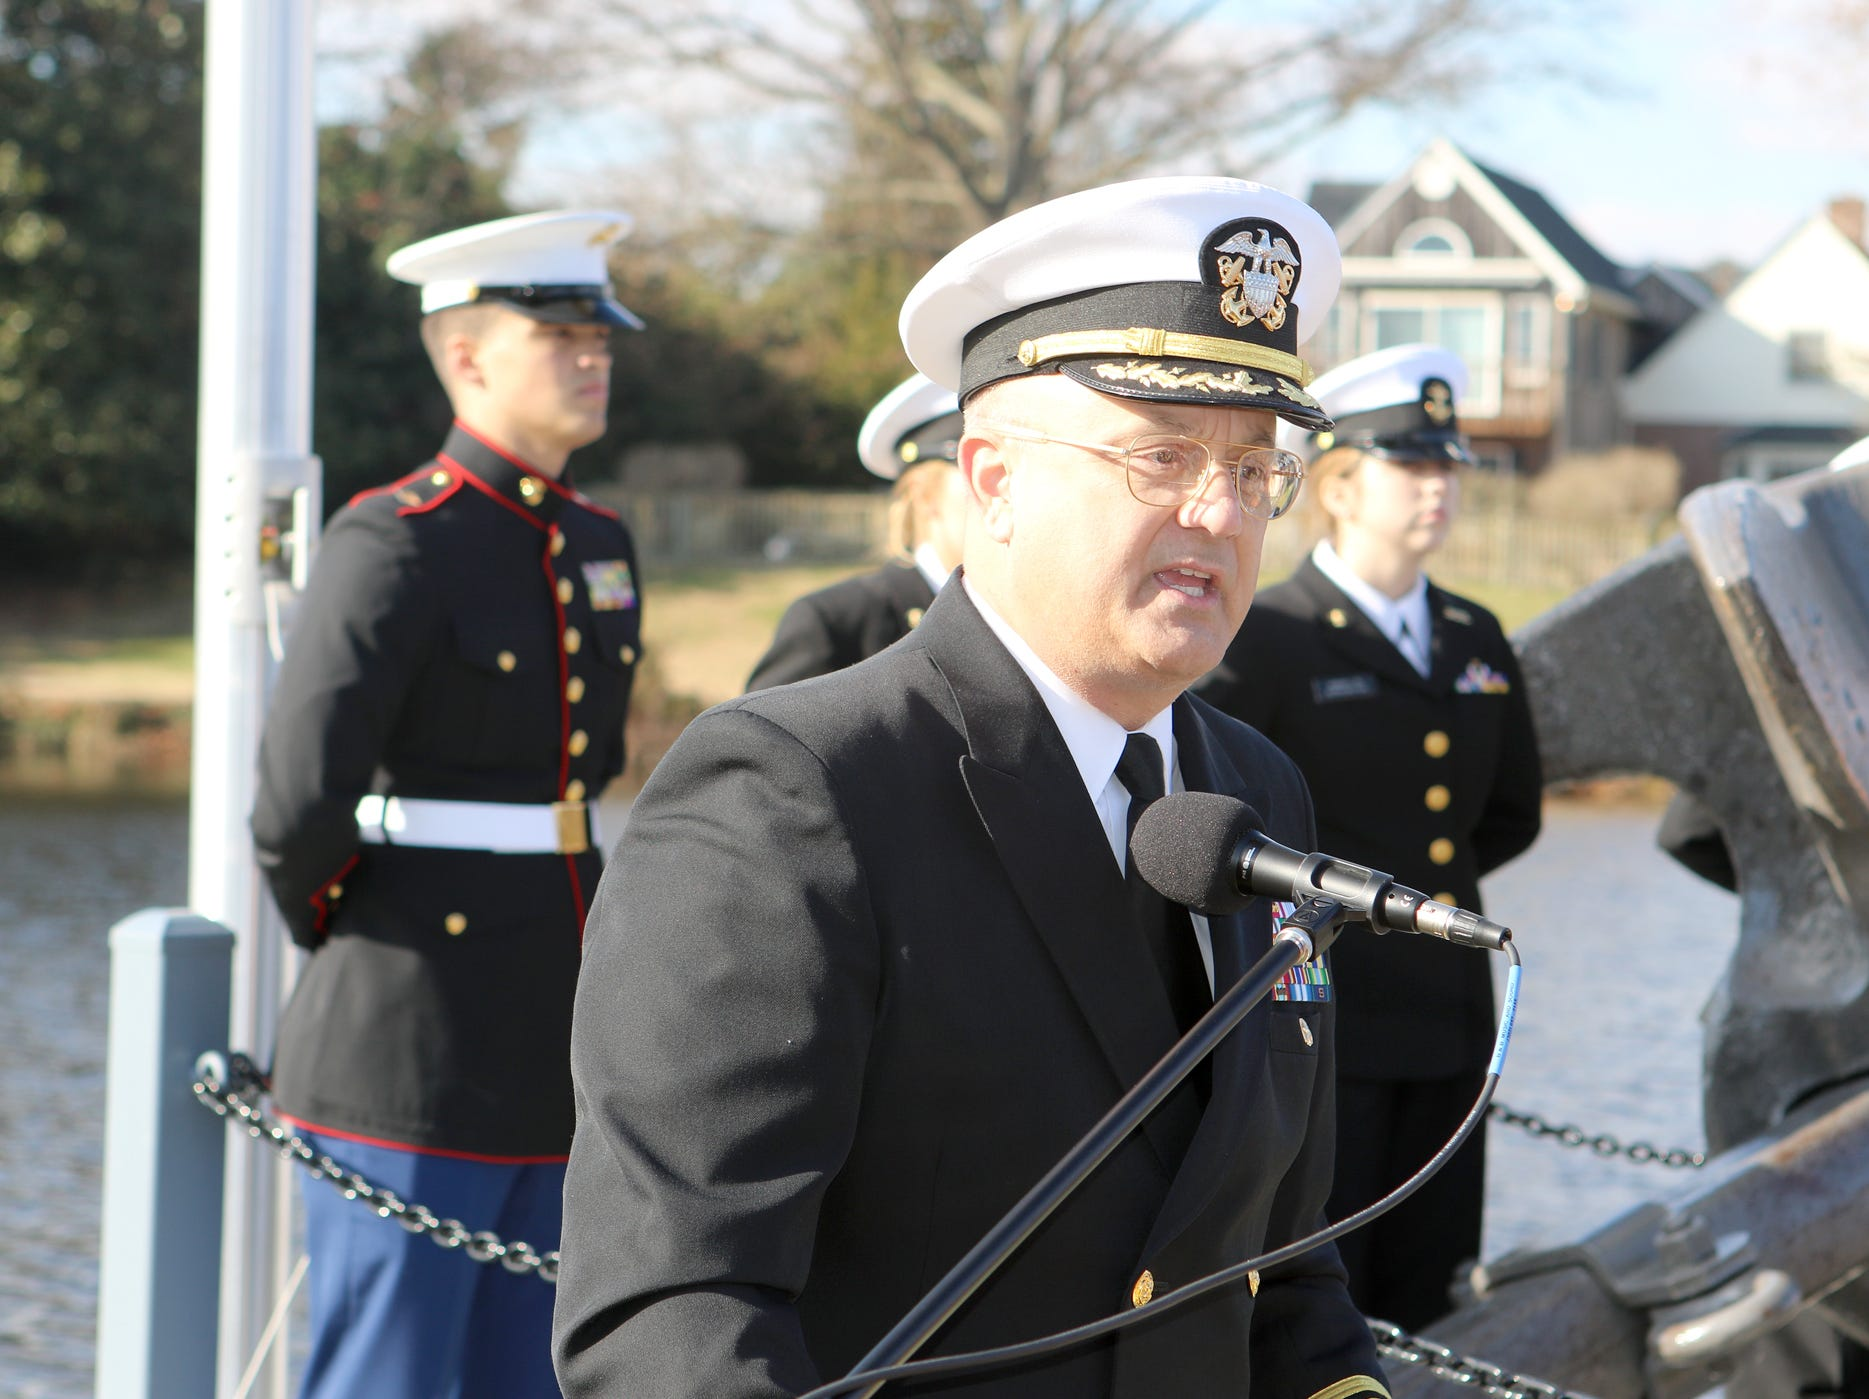 Capt. Robert E. Clark II (USN Ret.) and president of Wesley College in Dover was the keynote speaker for a memorial servive Friday at Lake Como in the Town of Smyrna commemmorating the attack on Pearl Harbor on Dec. 7, 1941. The memorial includes an anchor from a 1942 U.S. Navy destroyer.